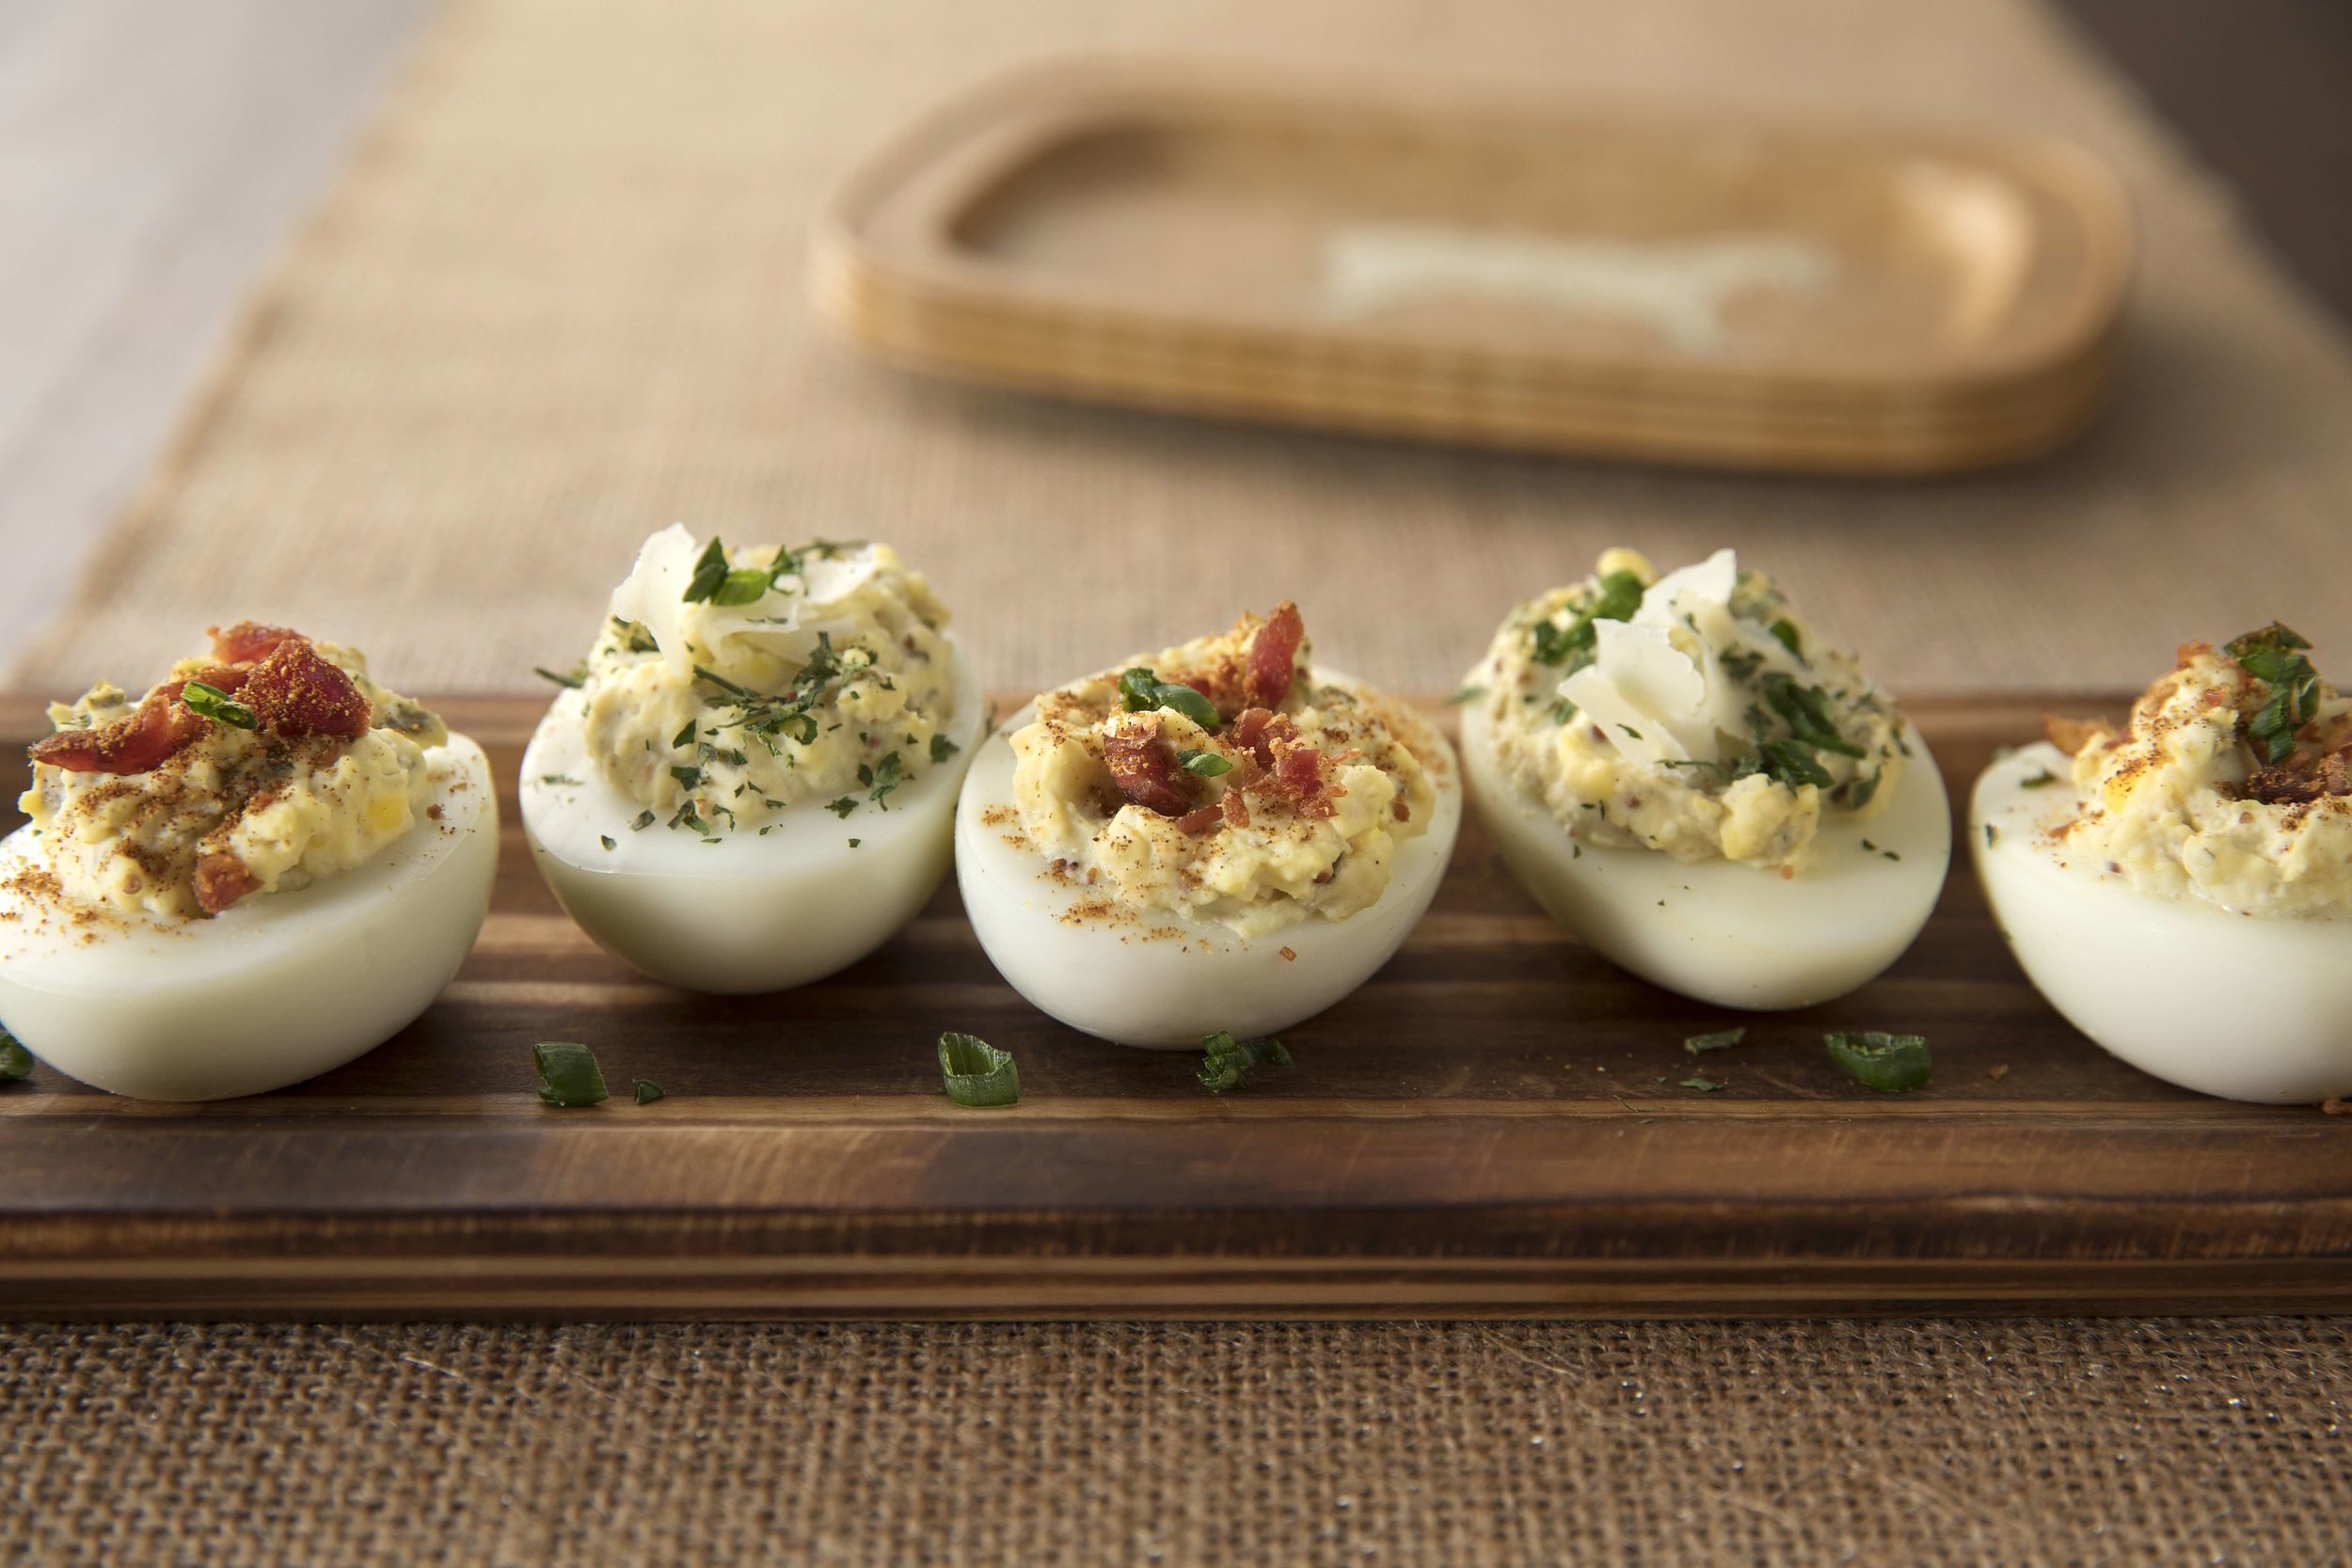 Classic Deviled Eggs - Ingredients6 peeled hardboiled eggs2 tubs darling white cheddar & mustard pickle dipoptional: bacon bits, green onions, parsley for garnishInstructions slice eggs length wise and scoop out yolks. Mash yolks with 2 tubs of darling pickle dips and spoon back into eggs. Garnish with bacon bits, fresh parsley or green onions and serve.